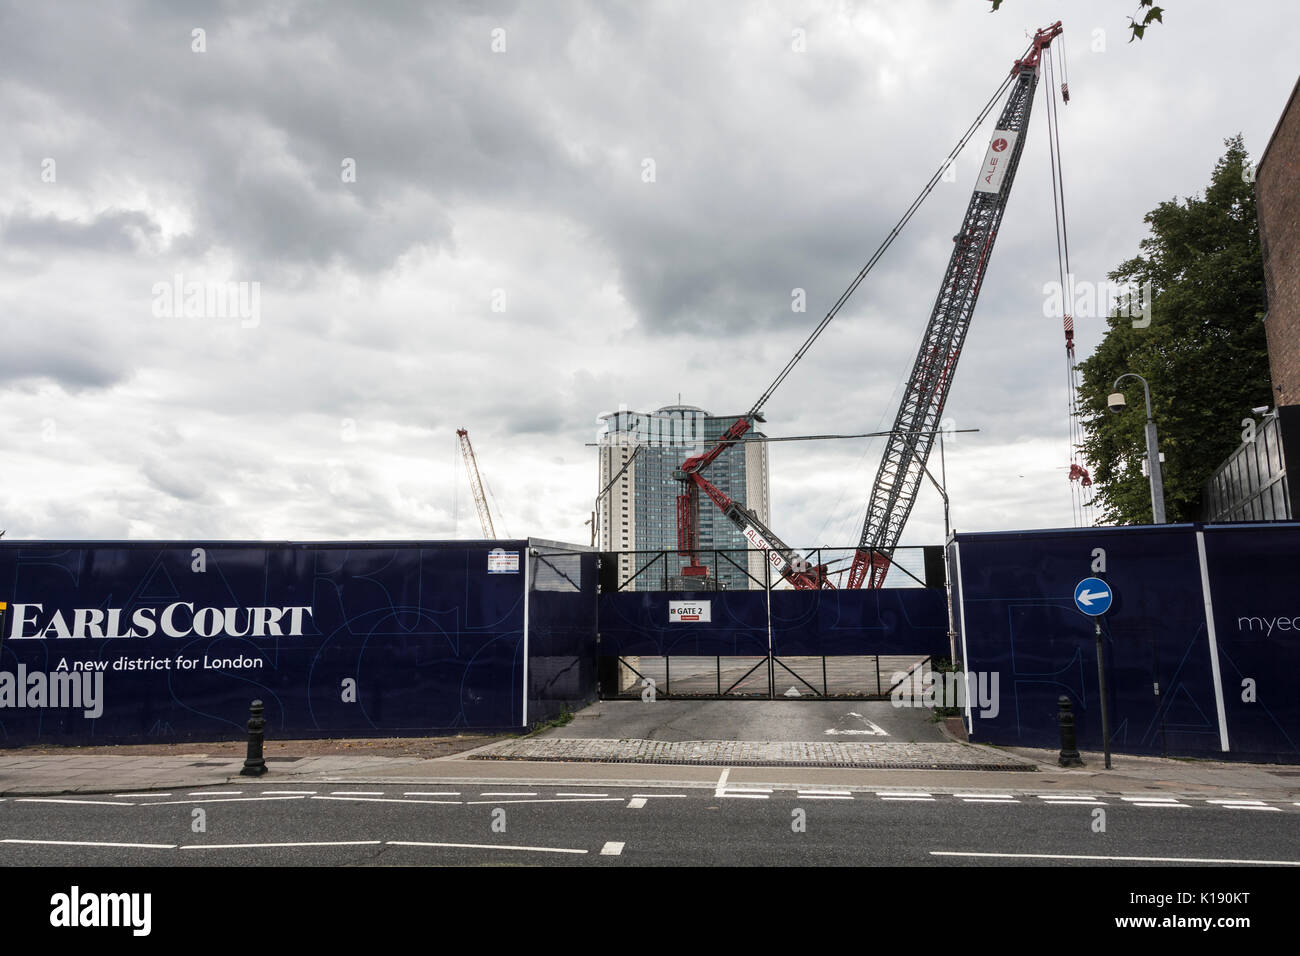 Gates at the entrance to the former Earls Court Exhibition Centre now part of Sir Terry Farrell's Earls Court - Stock Image